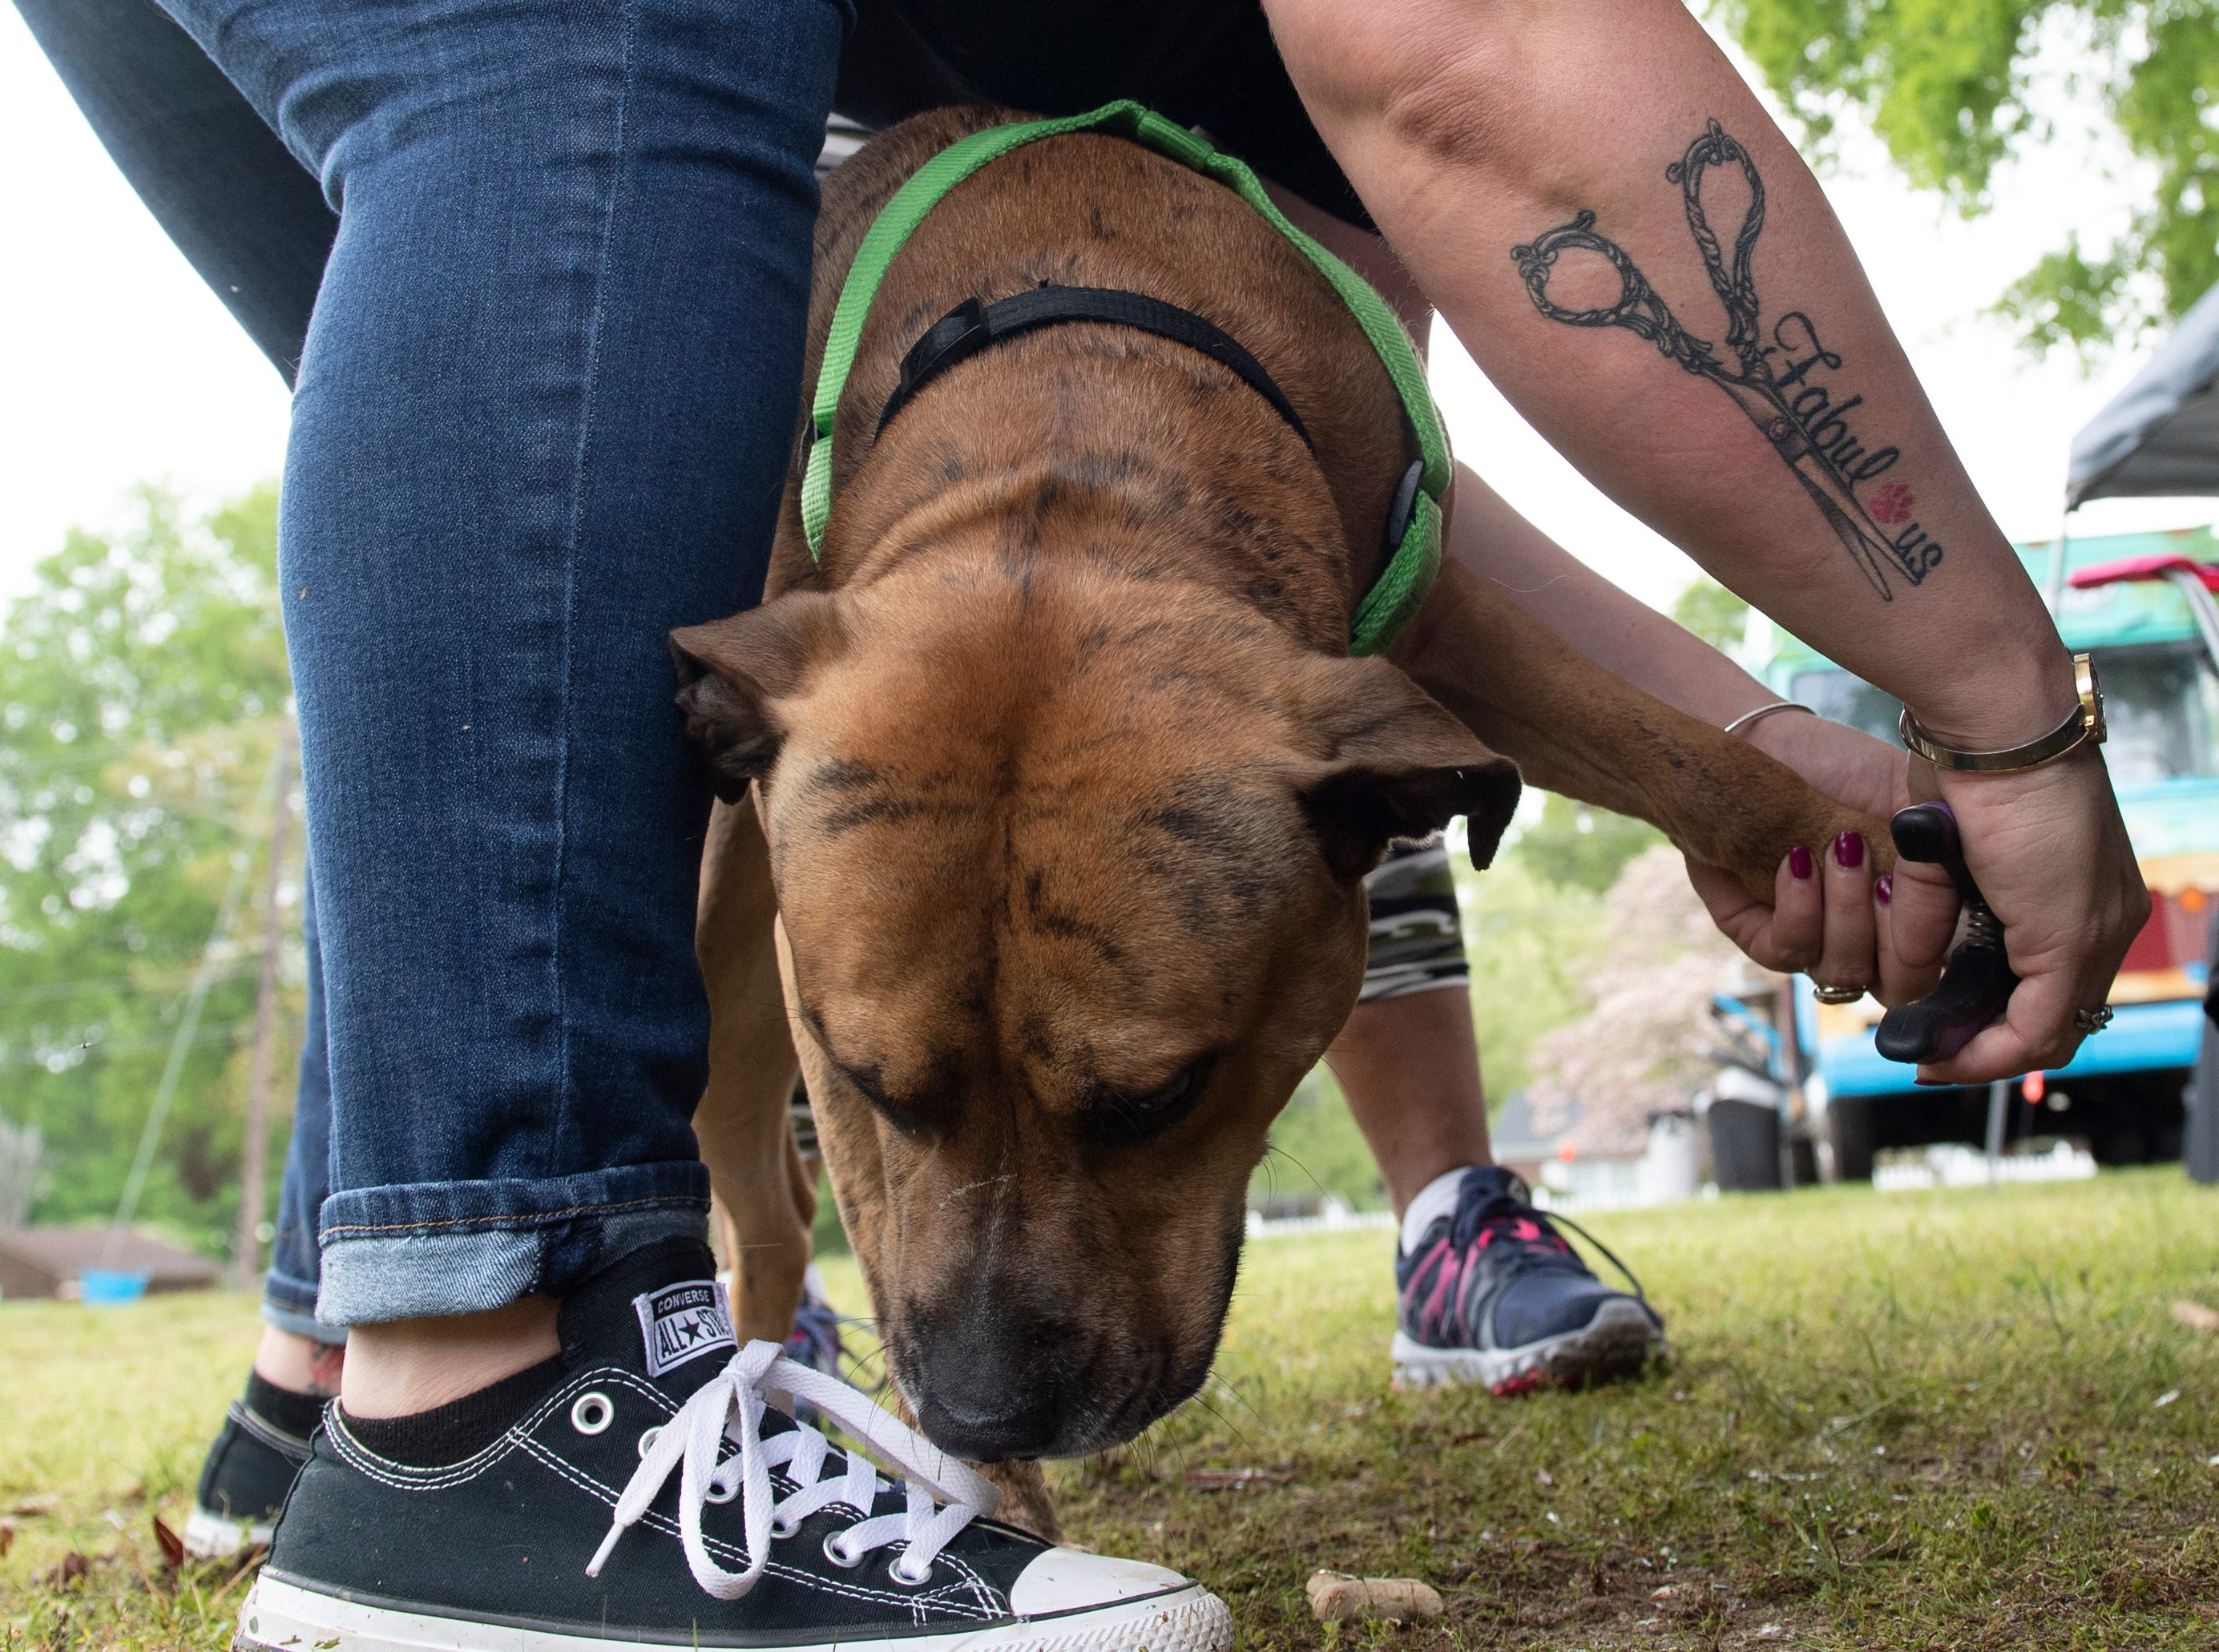 Tessa Hubbard, of Foo Foo Fabulous, clips Denver's nails, during the Paws for a Cause event at Simpsonville City Park Saturday, April 13, 2019. Denver was accompanied by owner Tammy Briggs of Simpsonville,